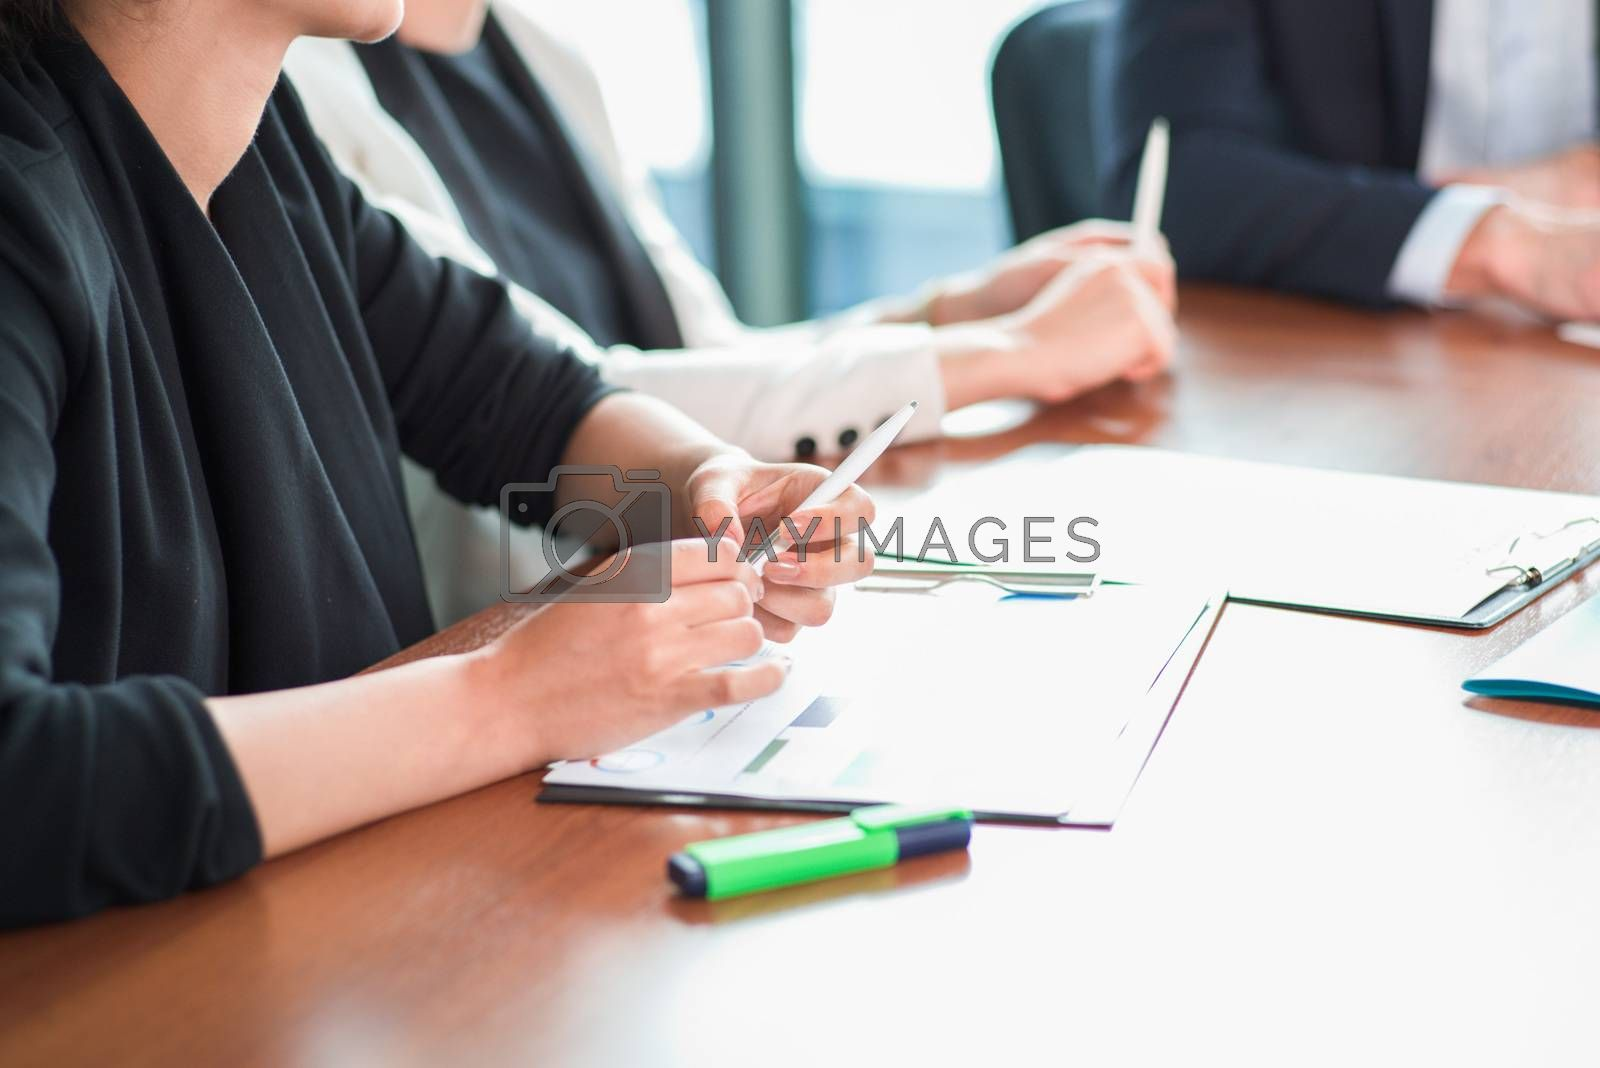 Business people discussing financial reports at meeting table